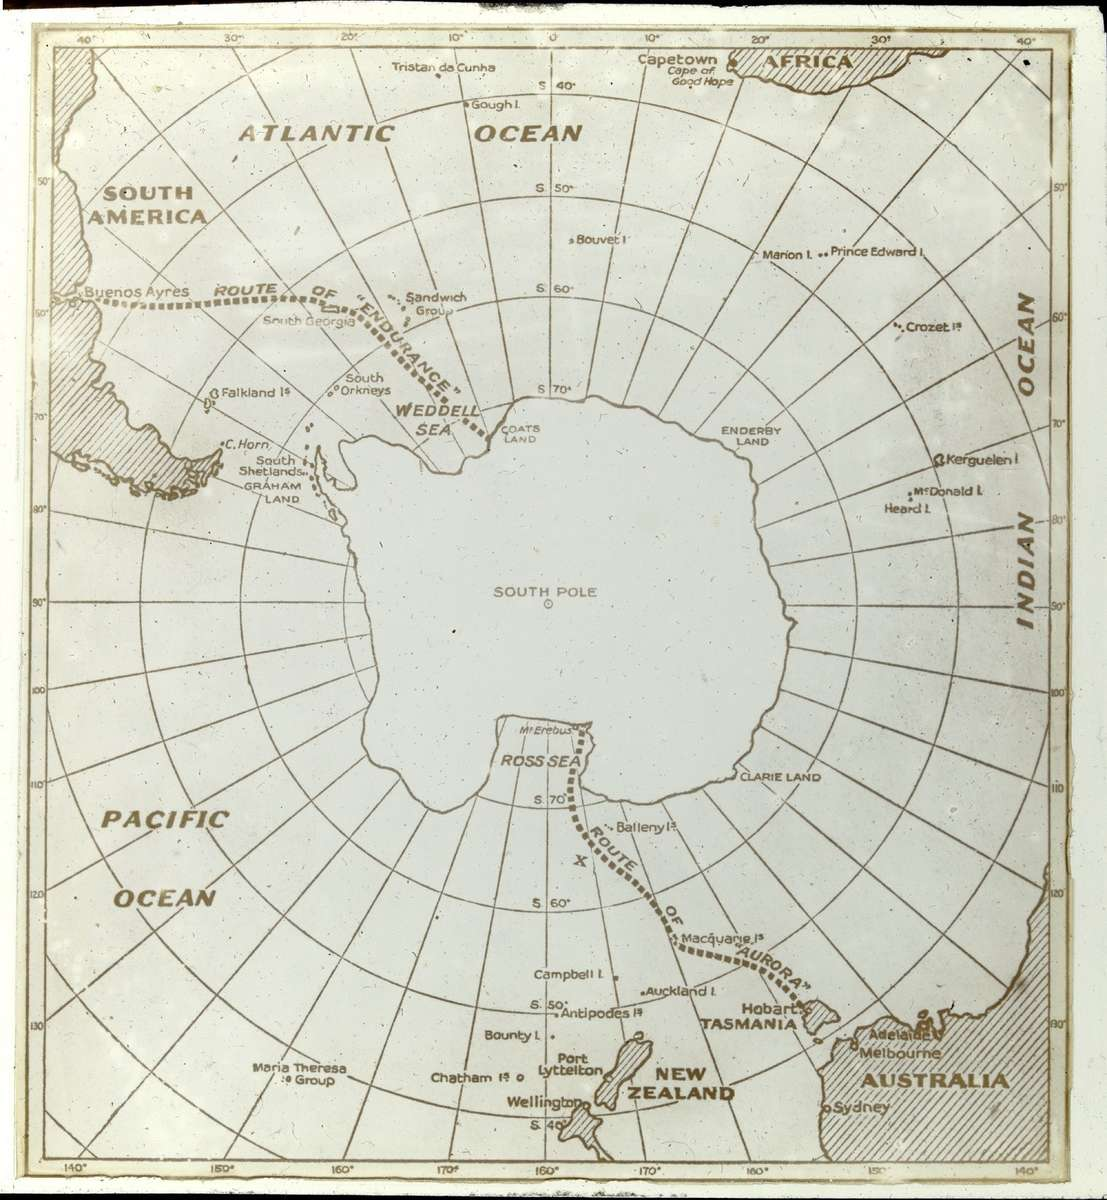 Map of the routes of Endurance and Aurora on the Imperial Trans- Antarctic Expedition, 1914–17, Andrew Keith Jack, courtesy State Library of Victoria